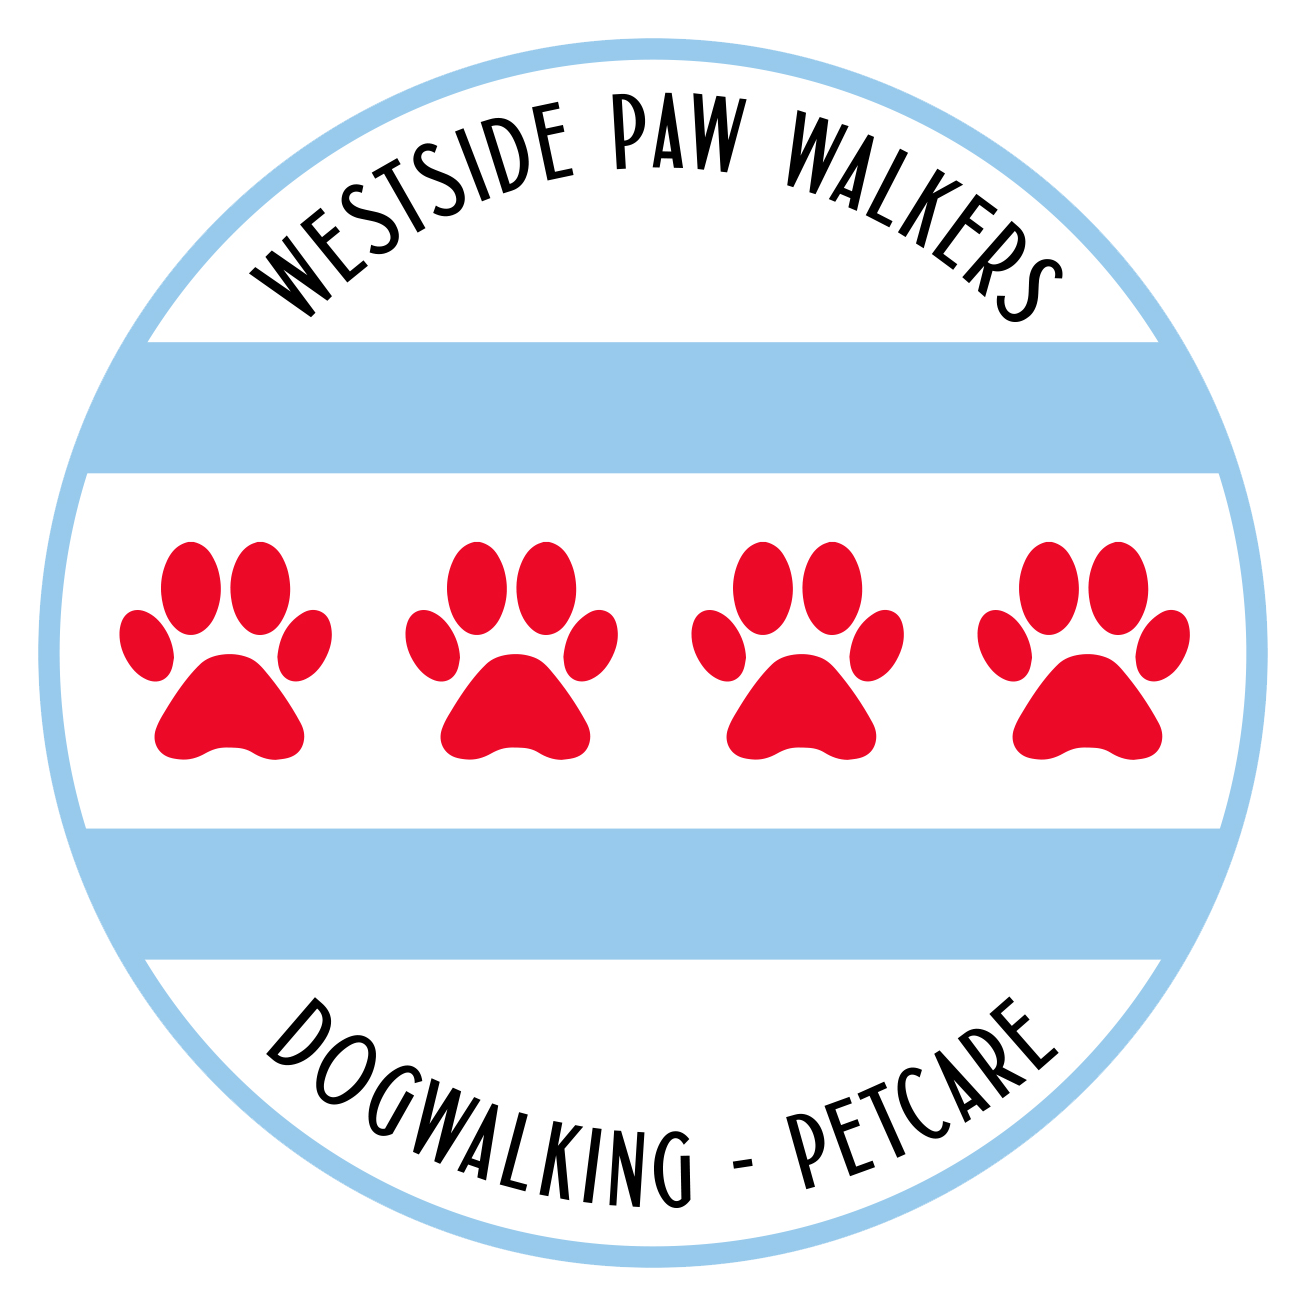 Westside Paw Walkers LLC